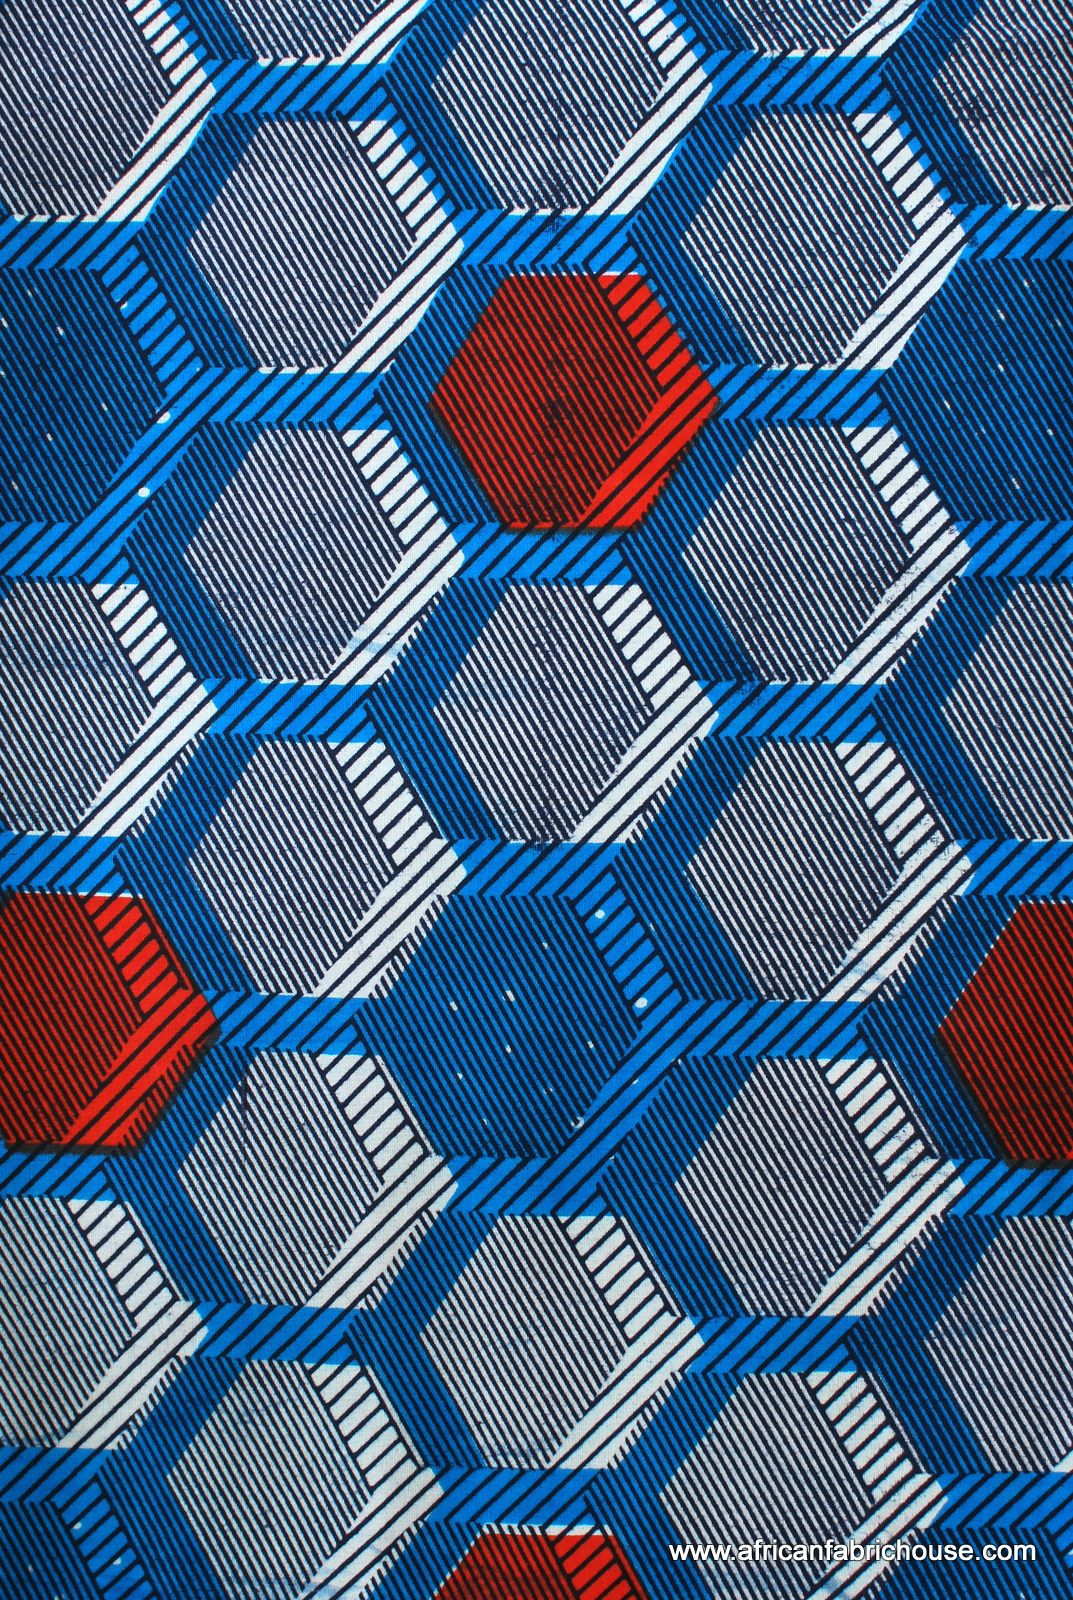 Hexagon blue pattern language pinterest patterns for Patterned material for sale